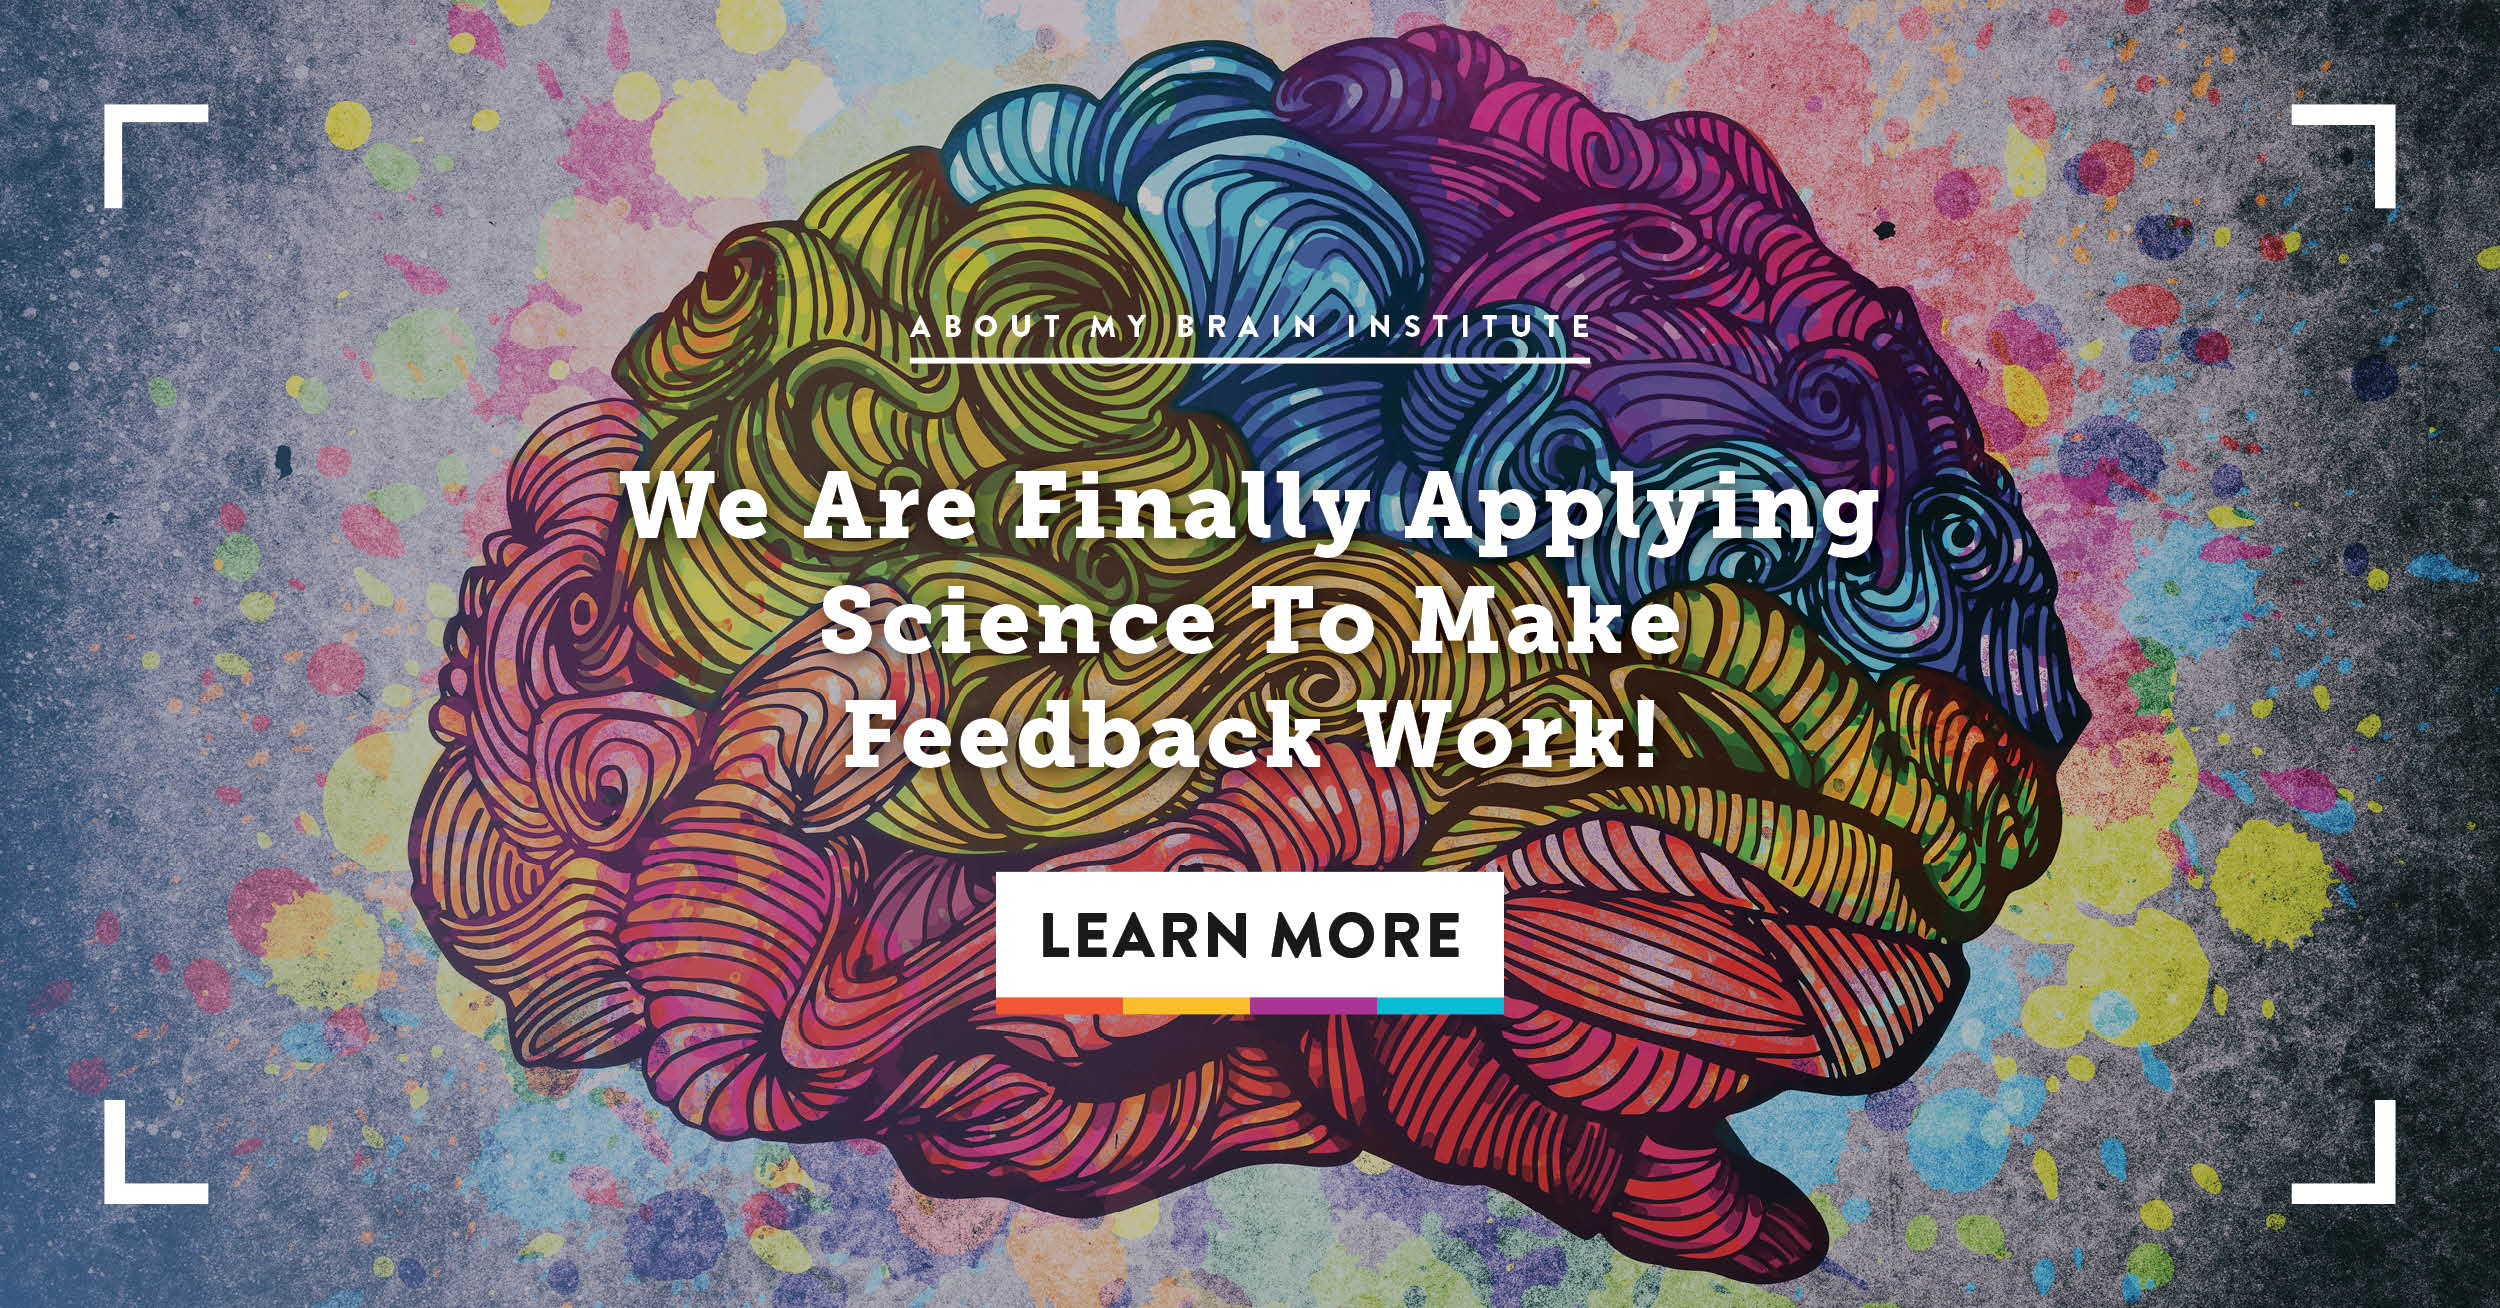 We Are Finally Applying Science To Make Feedback Work!